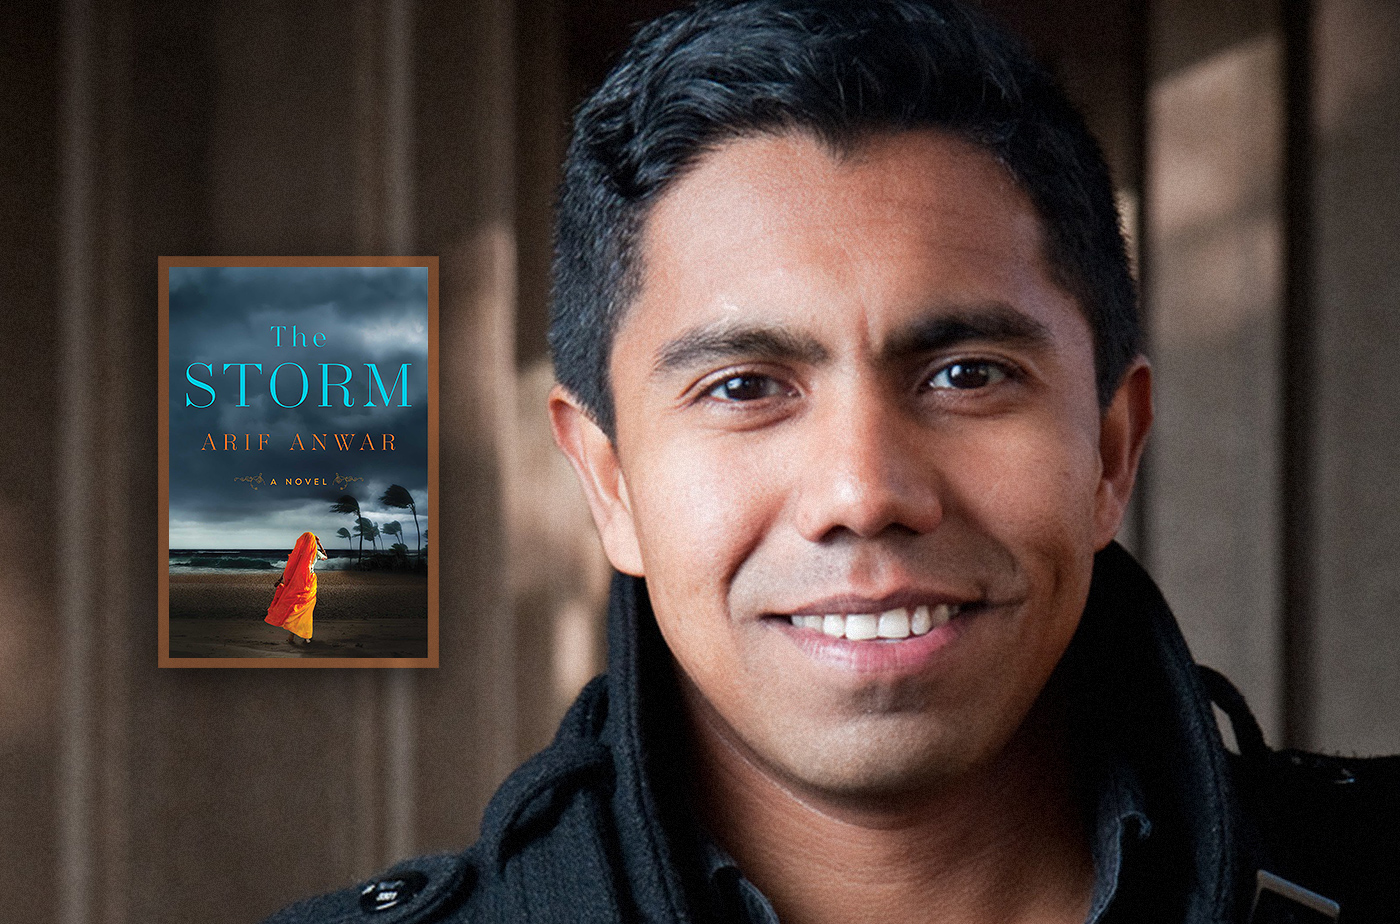 Catapult online classes: Arif Anwar, 6-Week Online Fiction Workshop: Writing the Novel 101, Novel, Workshop